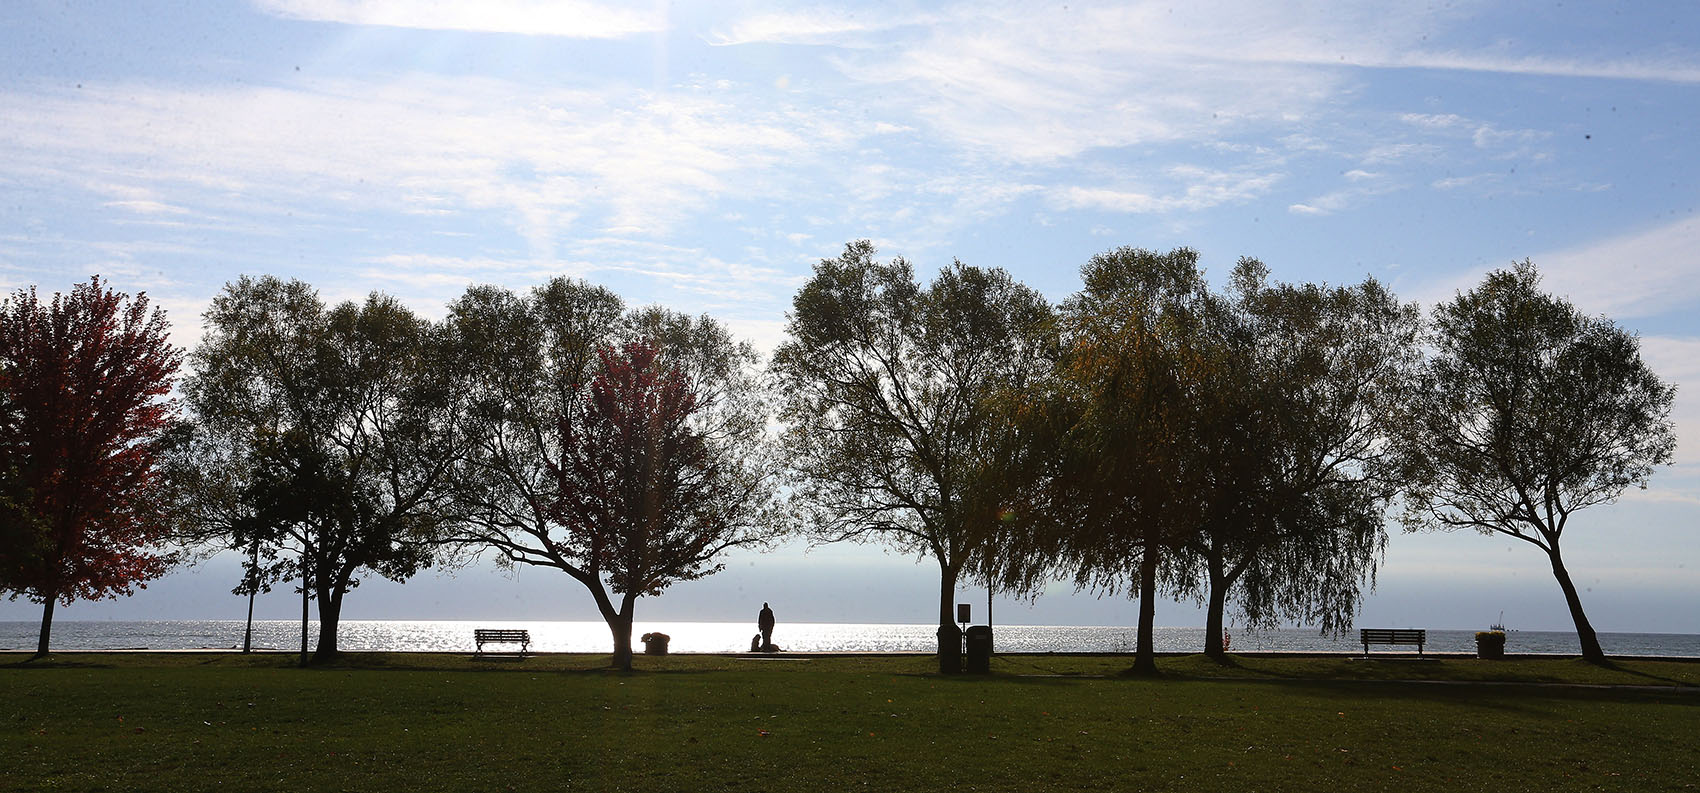 A person pauses from their walk on the boardwalk to look out on Lake Ontario at the Beaches in Toronto on Oct. 24, 2019. (Steve Russell/Toronto Star via Getty Images)